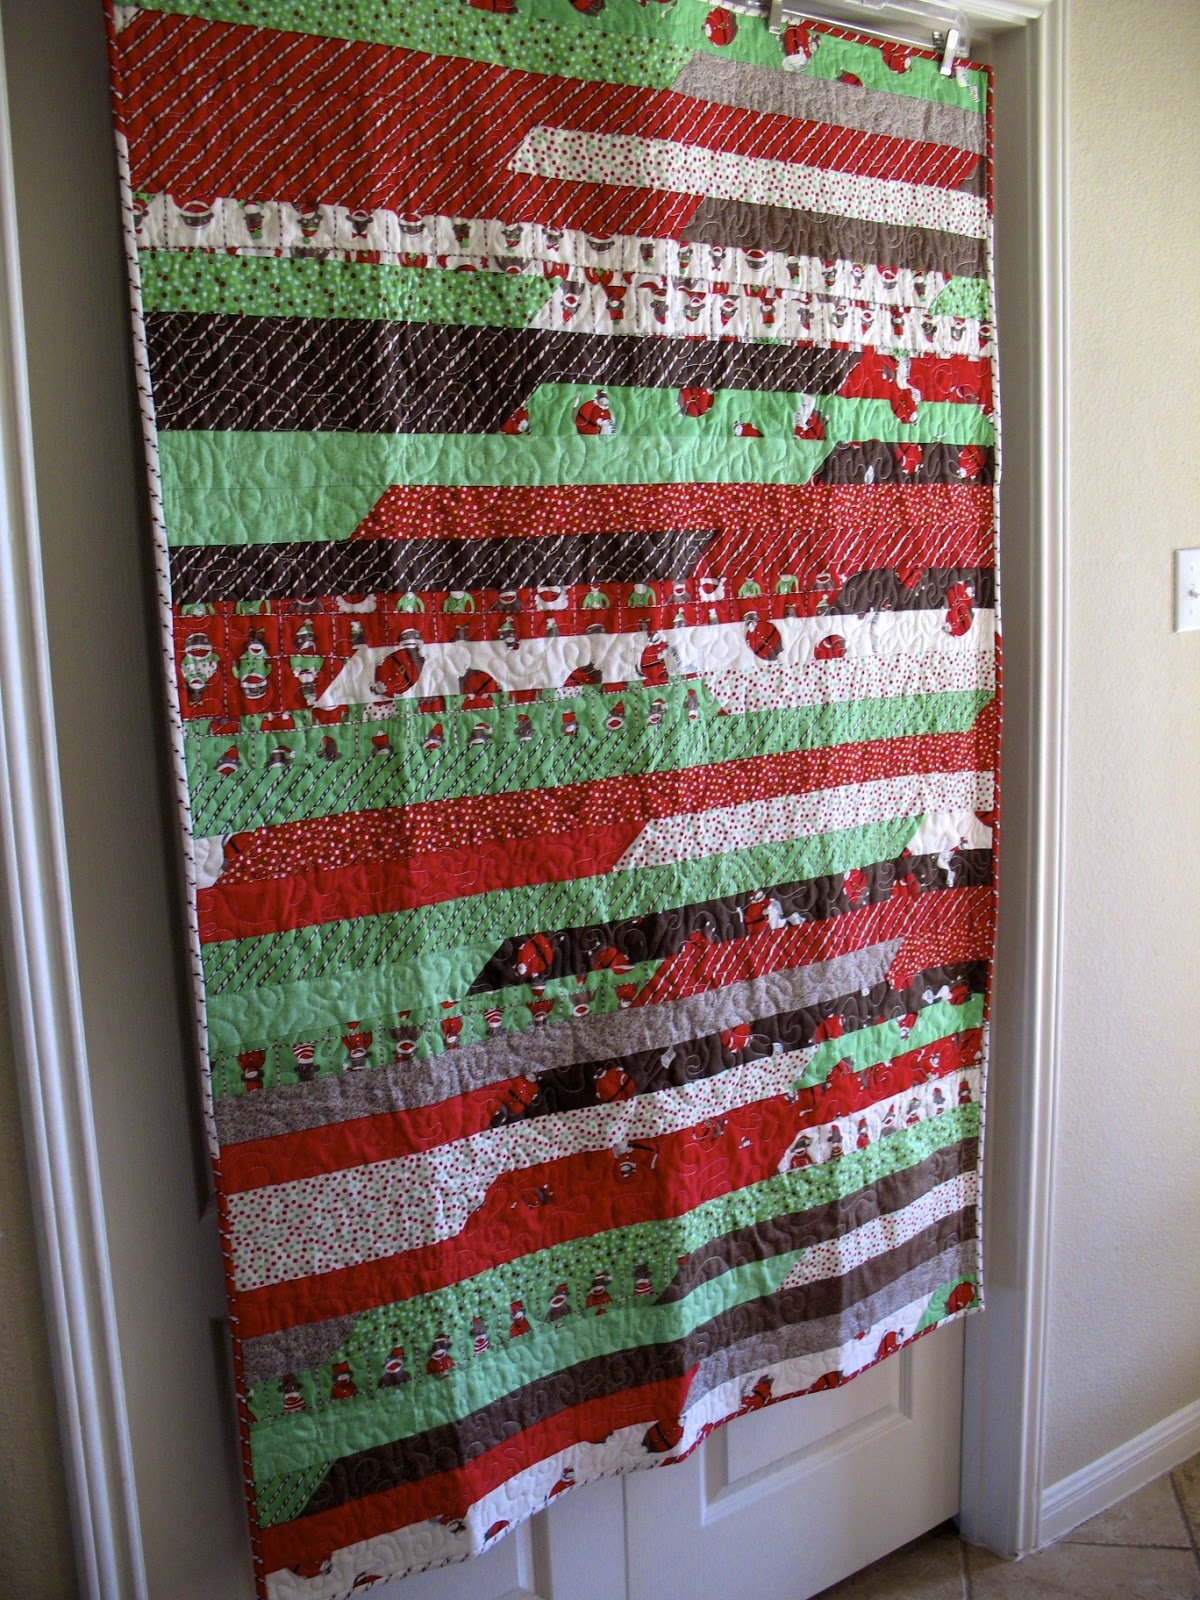 Lasagna Quilt Pattern Jelly Roll : The Tilted Quilt: Lasagna Quilt Tutorial